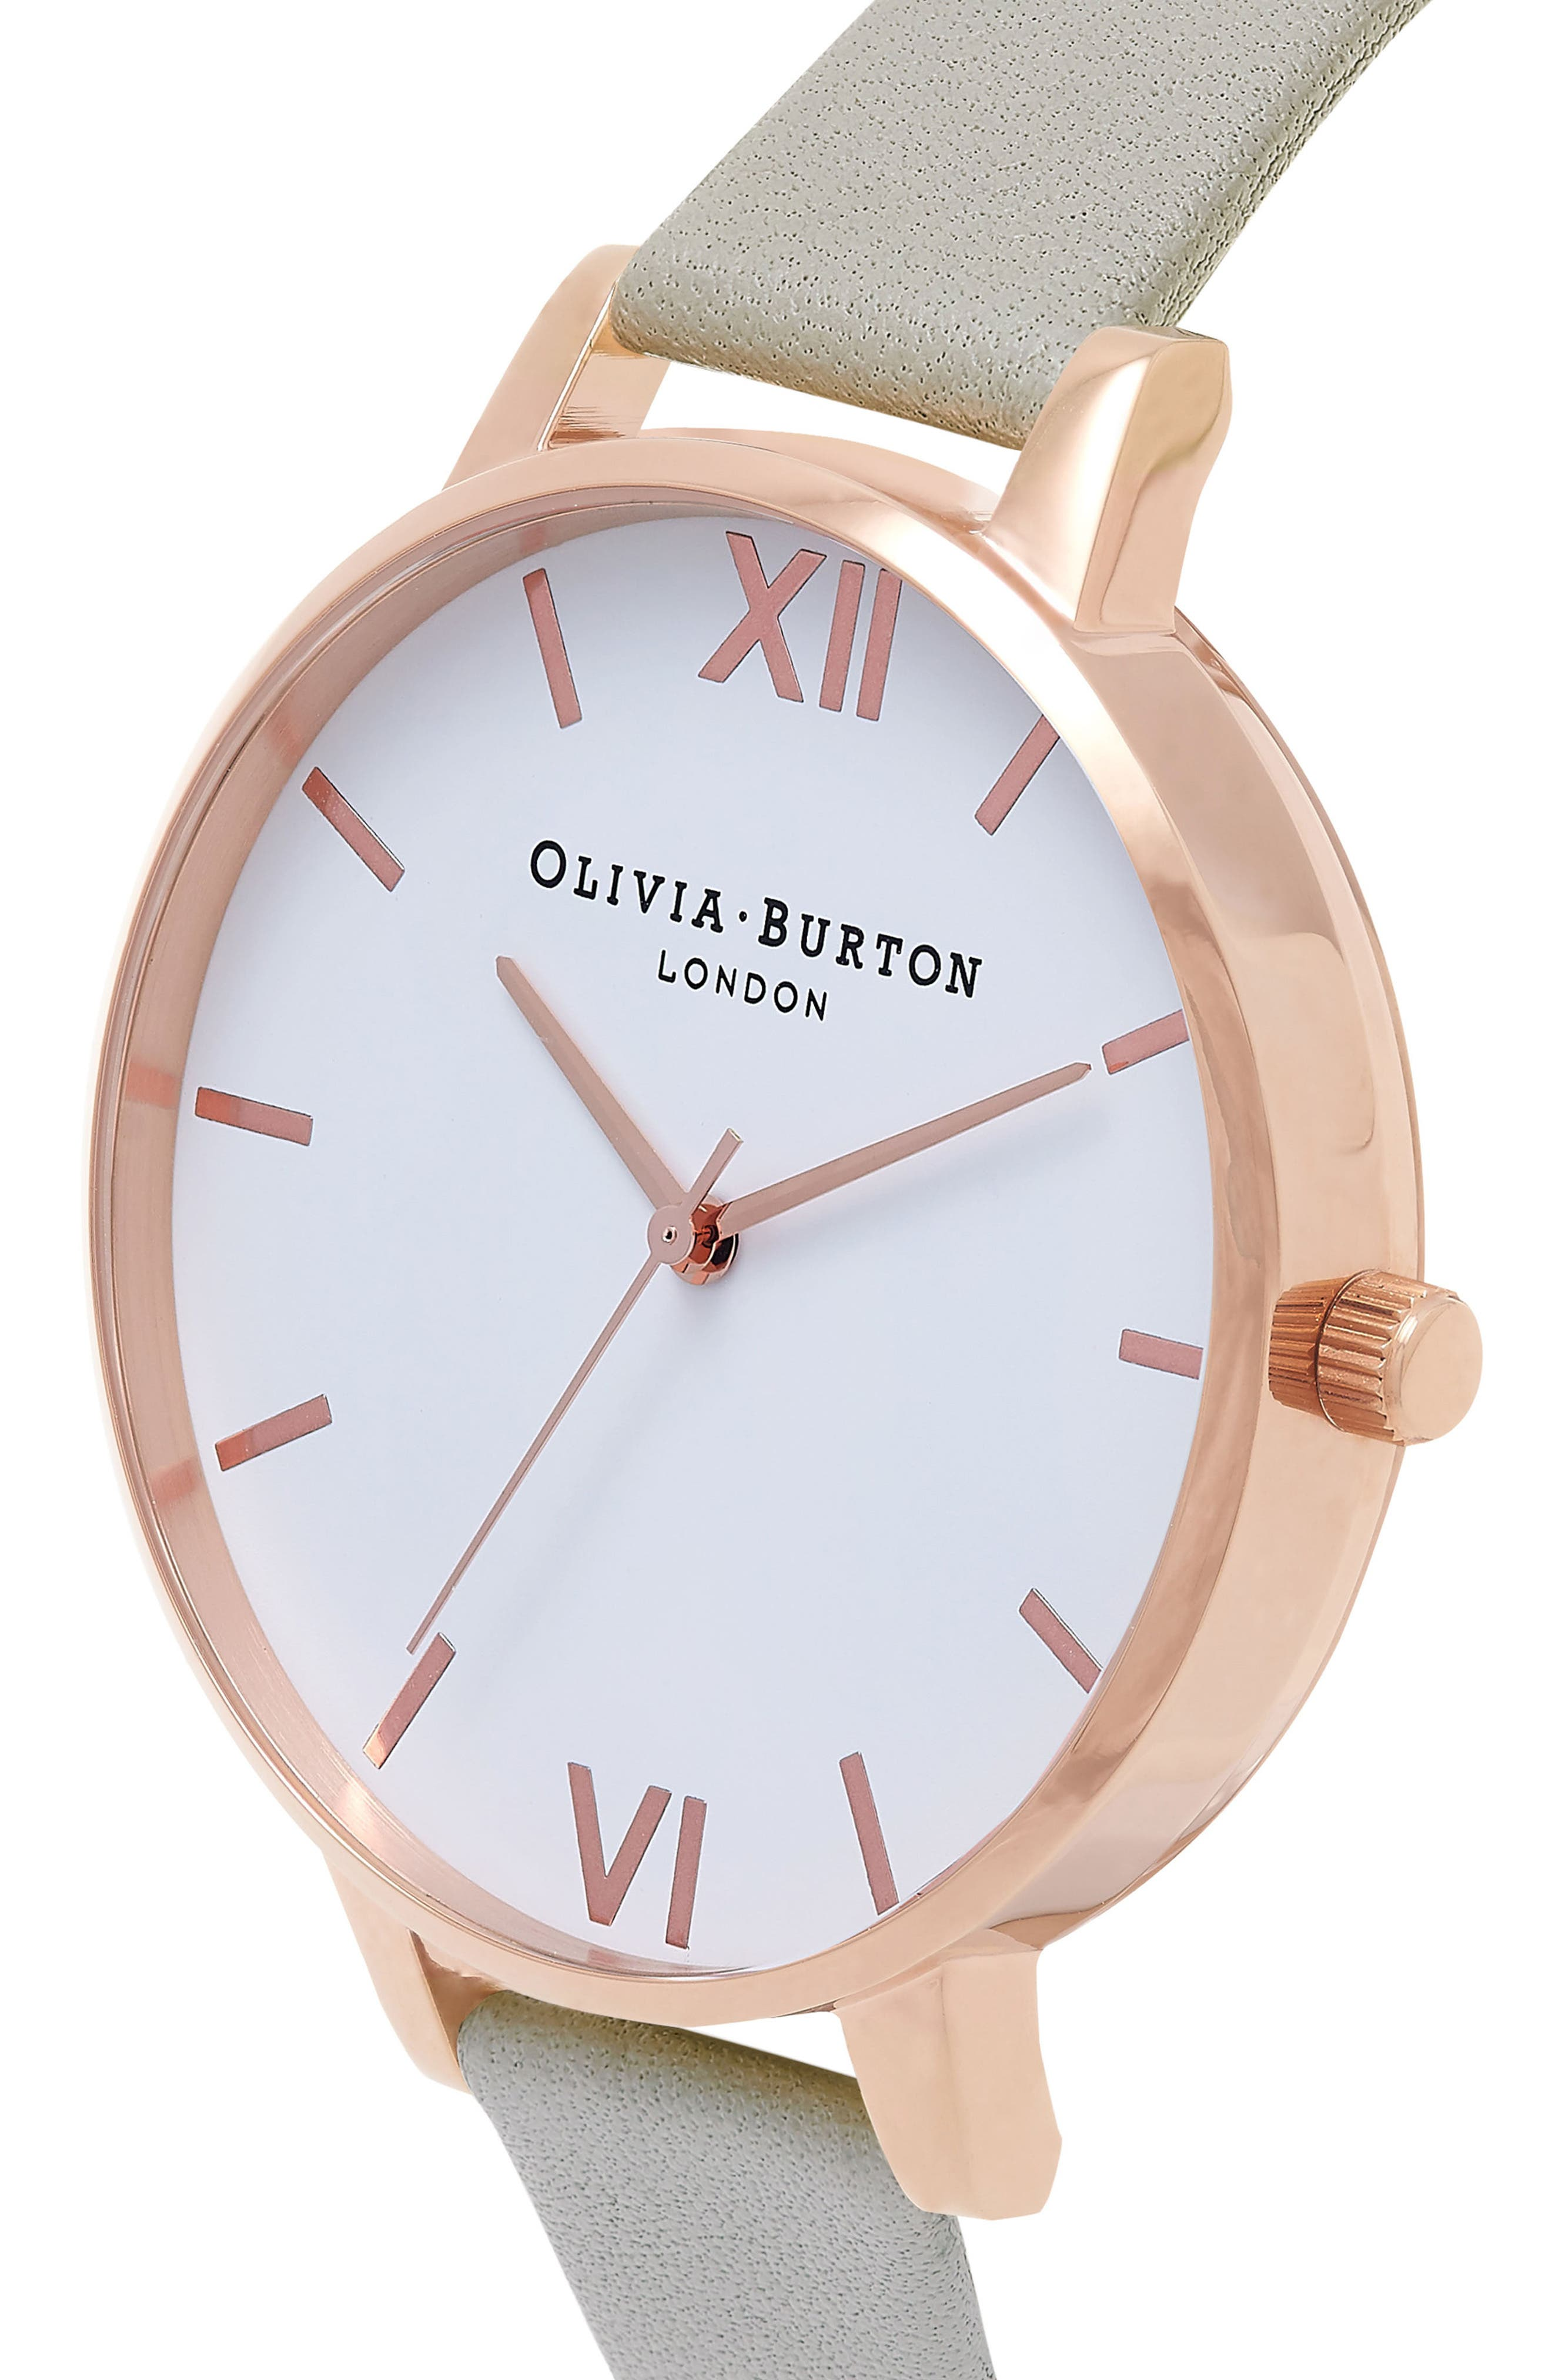 OLIVIA BURTON, Big Dial Leather Strap Watch, 38mm, Alternate thumbnail 4, color, GREY/ WHITE